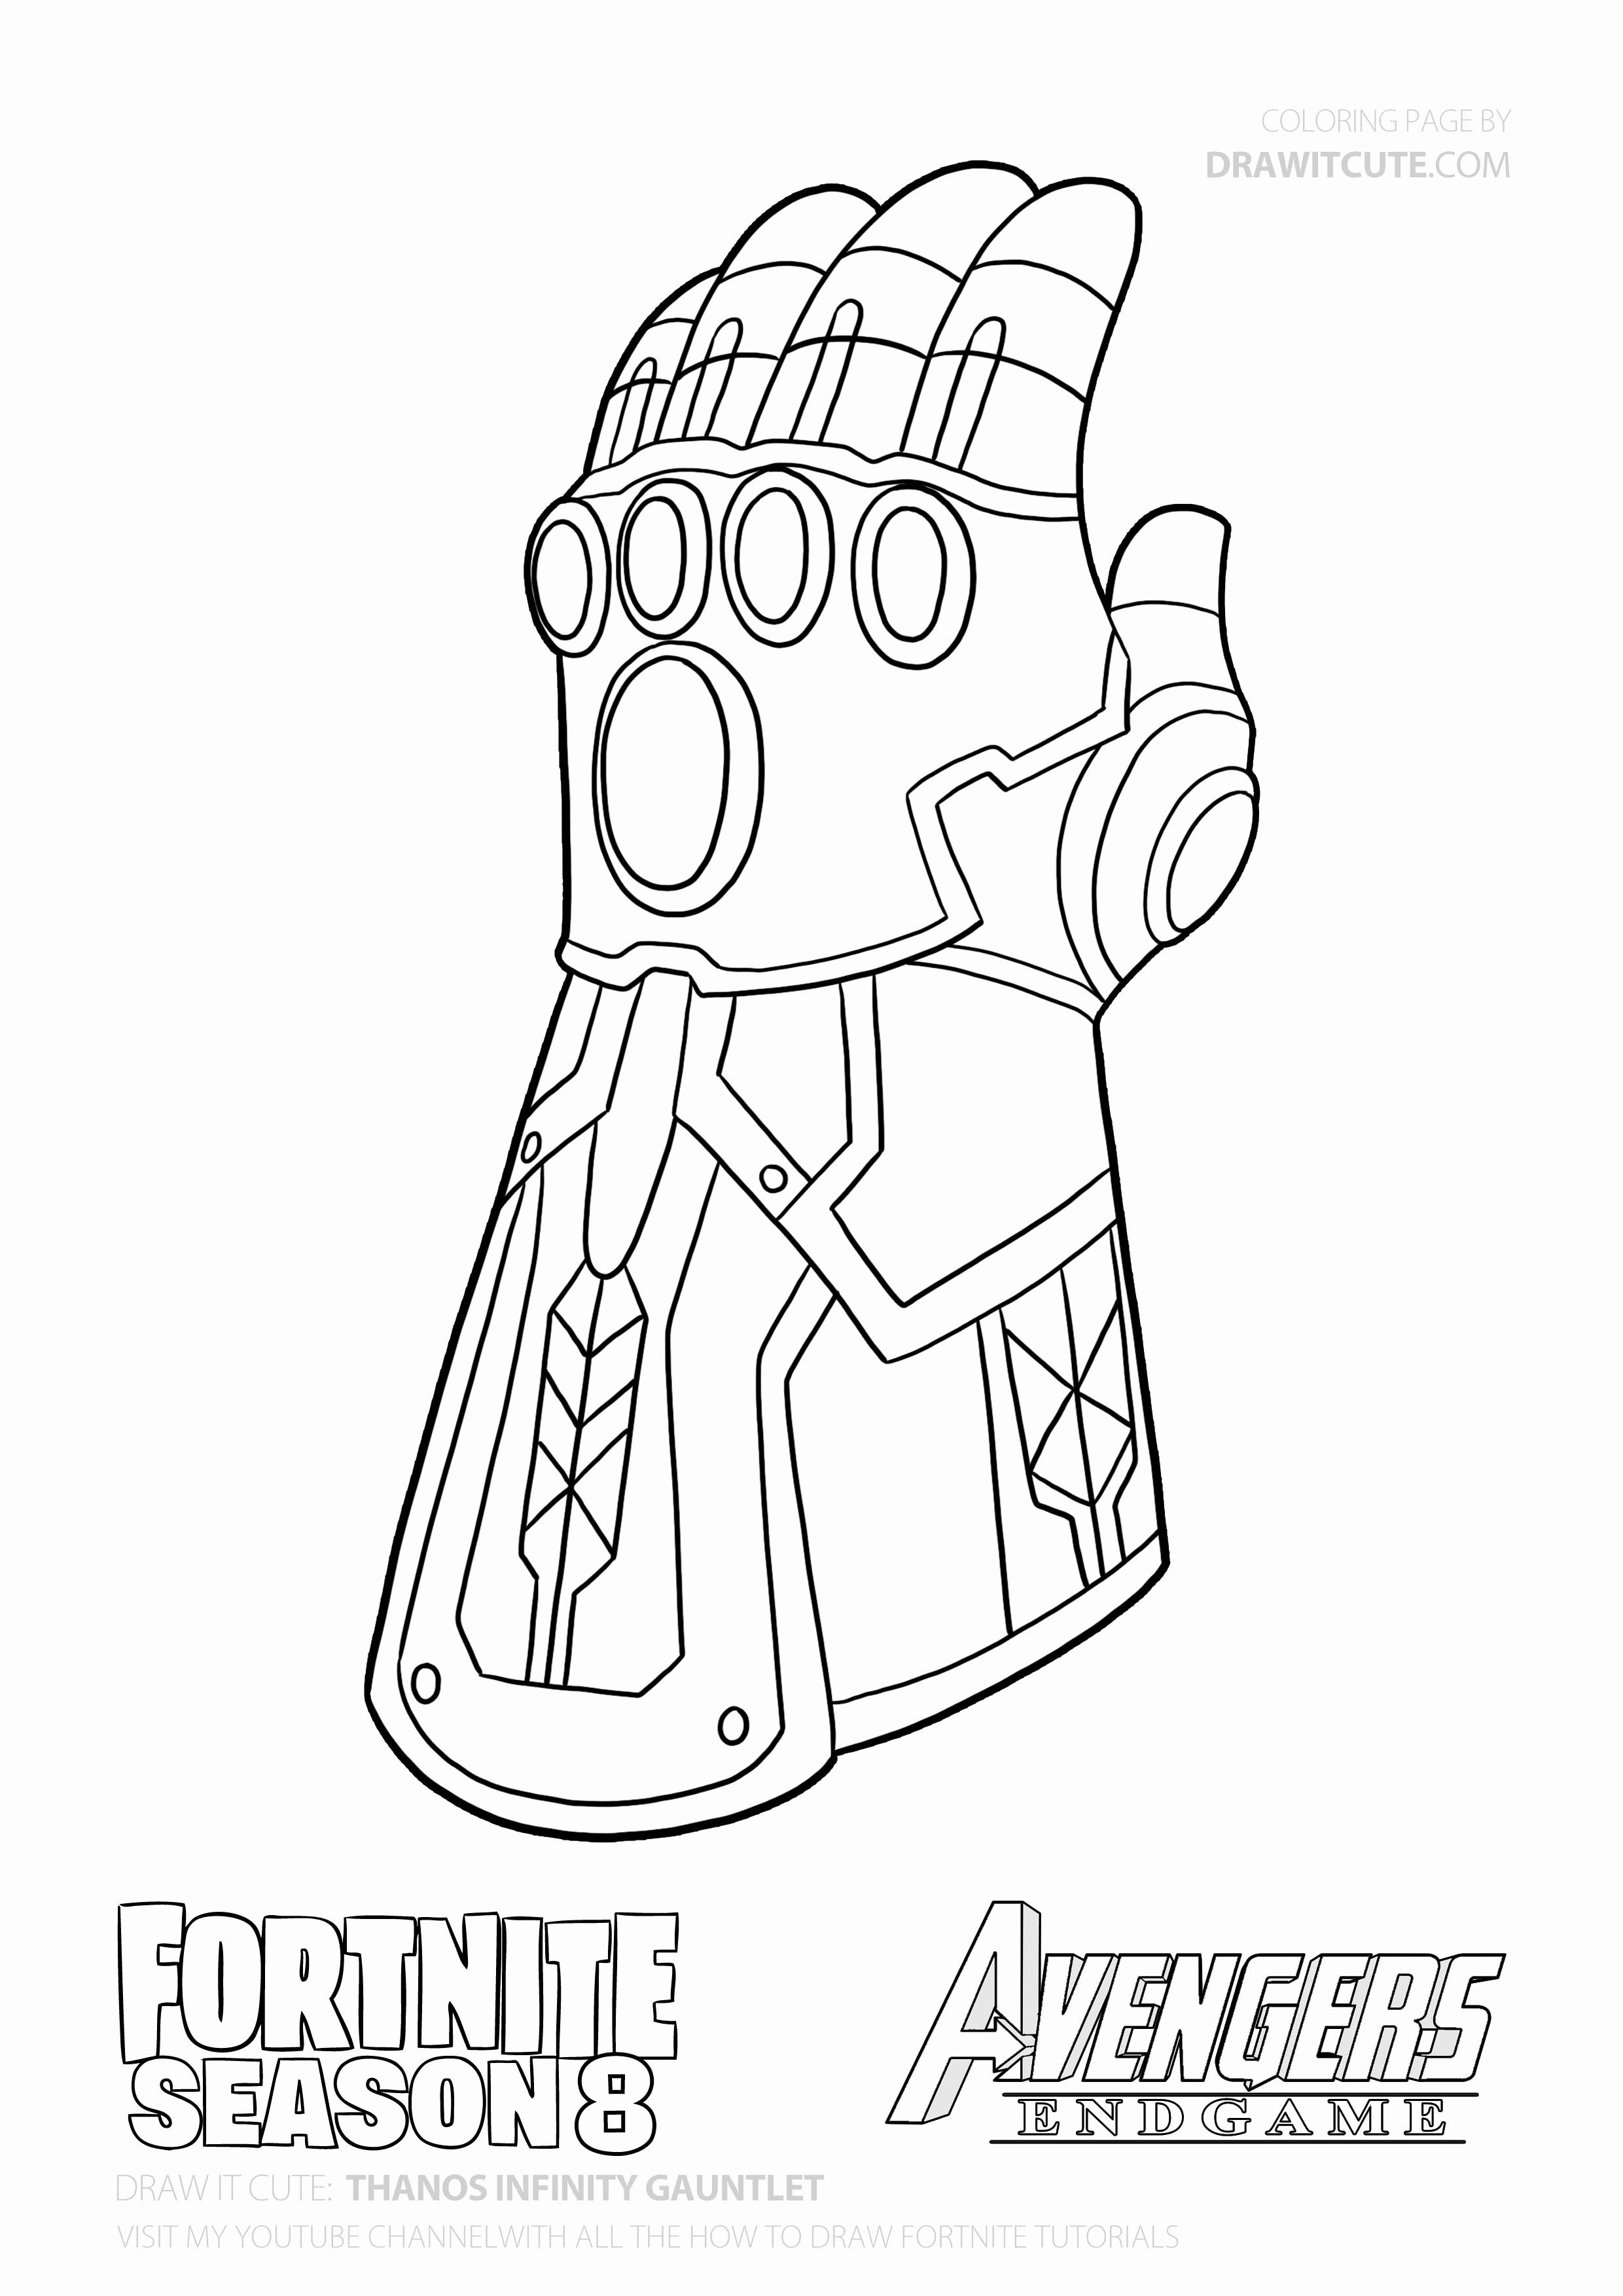 Infinity Gauntlet Coloring Page Inspirational How To Draw Thanos Infinity Gauntlet Superhero Coloring Pages Marvel Coloring Avengers Coloring Pages